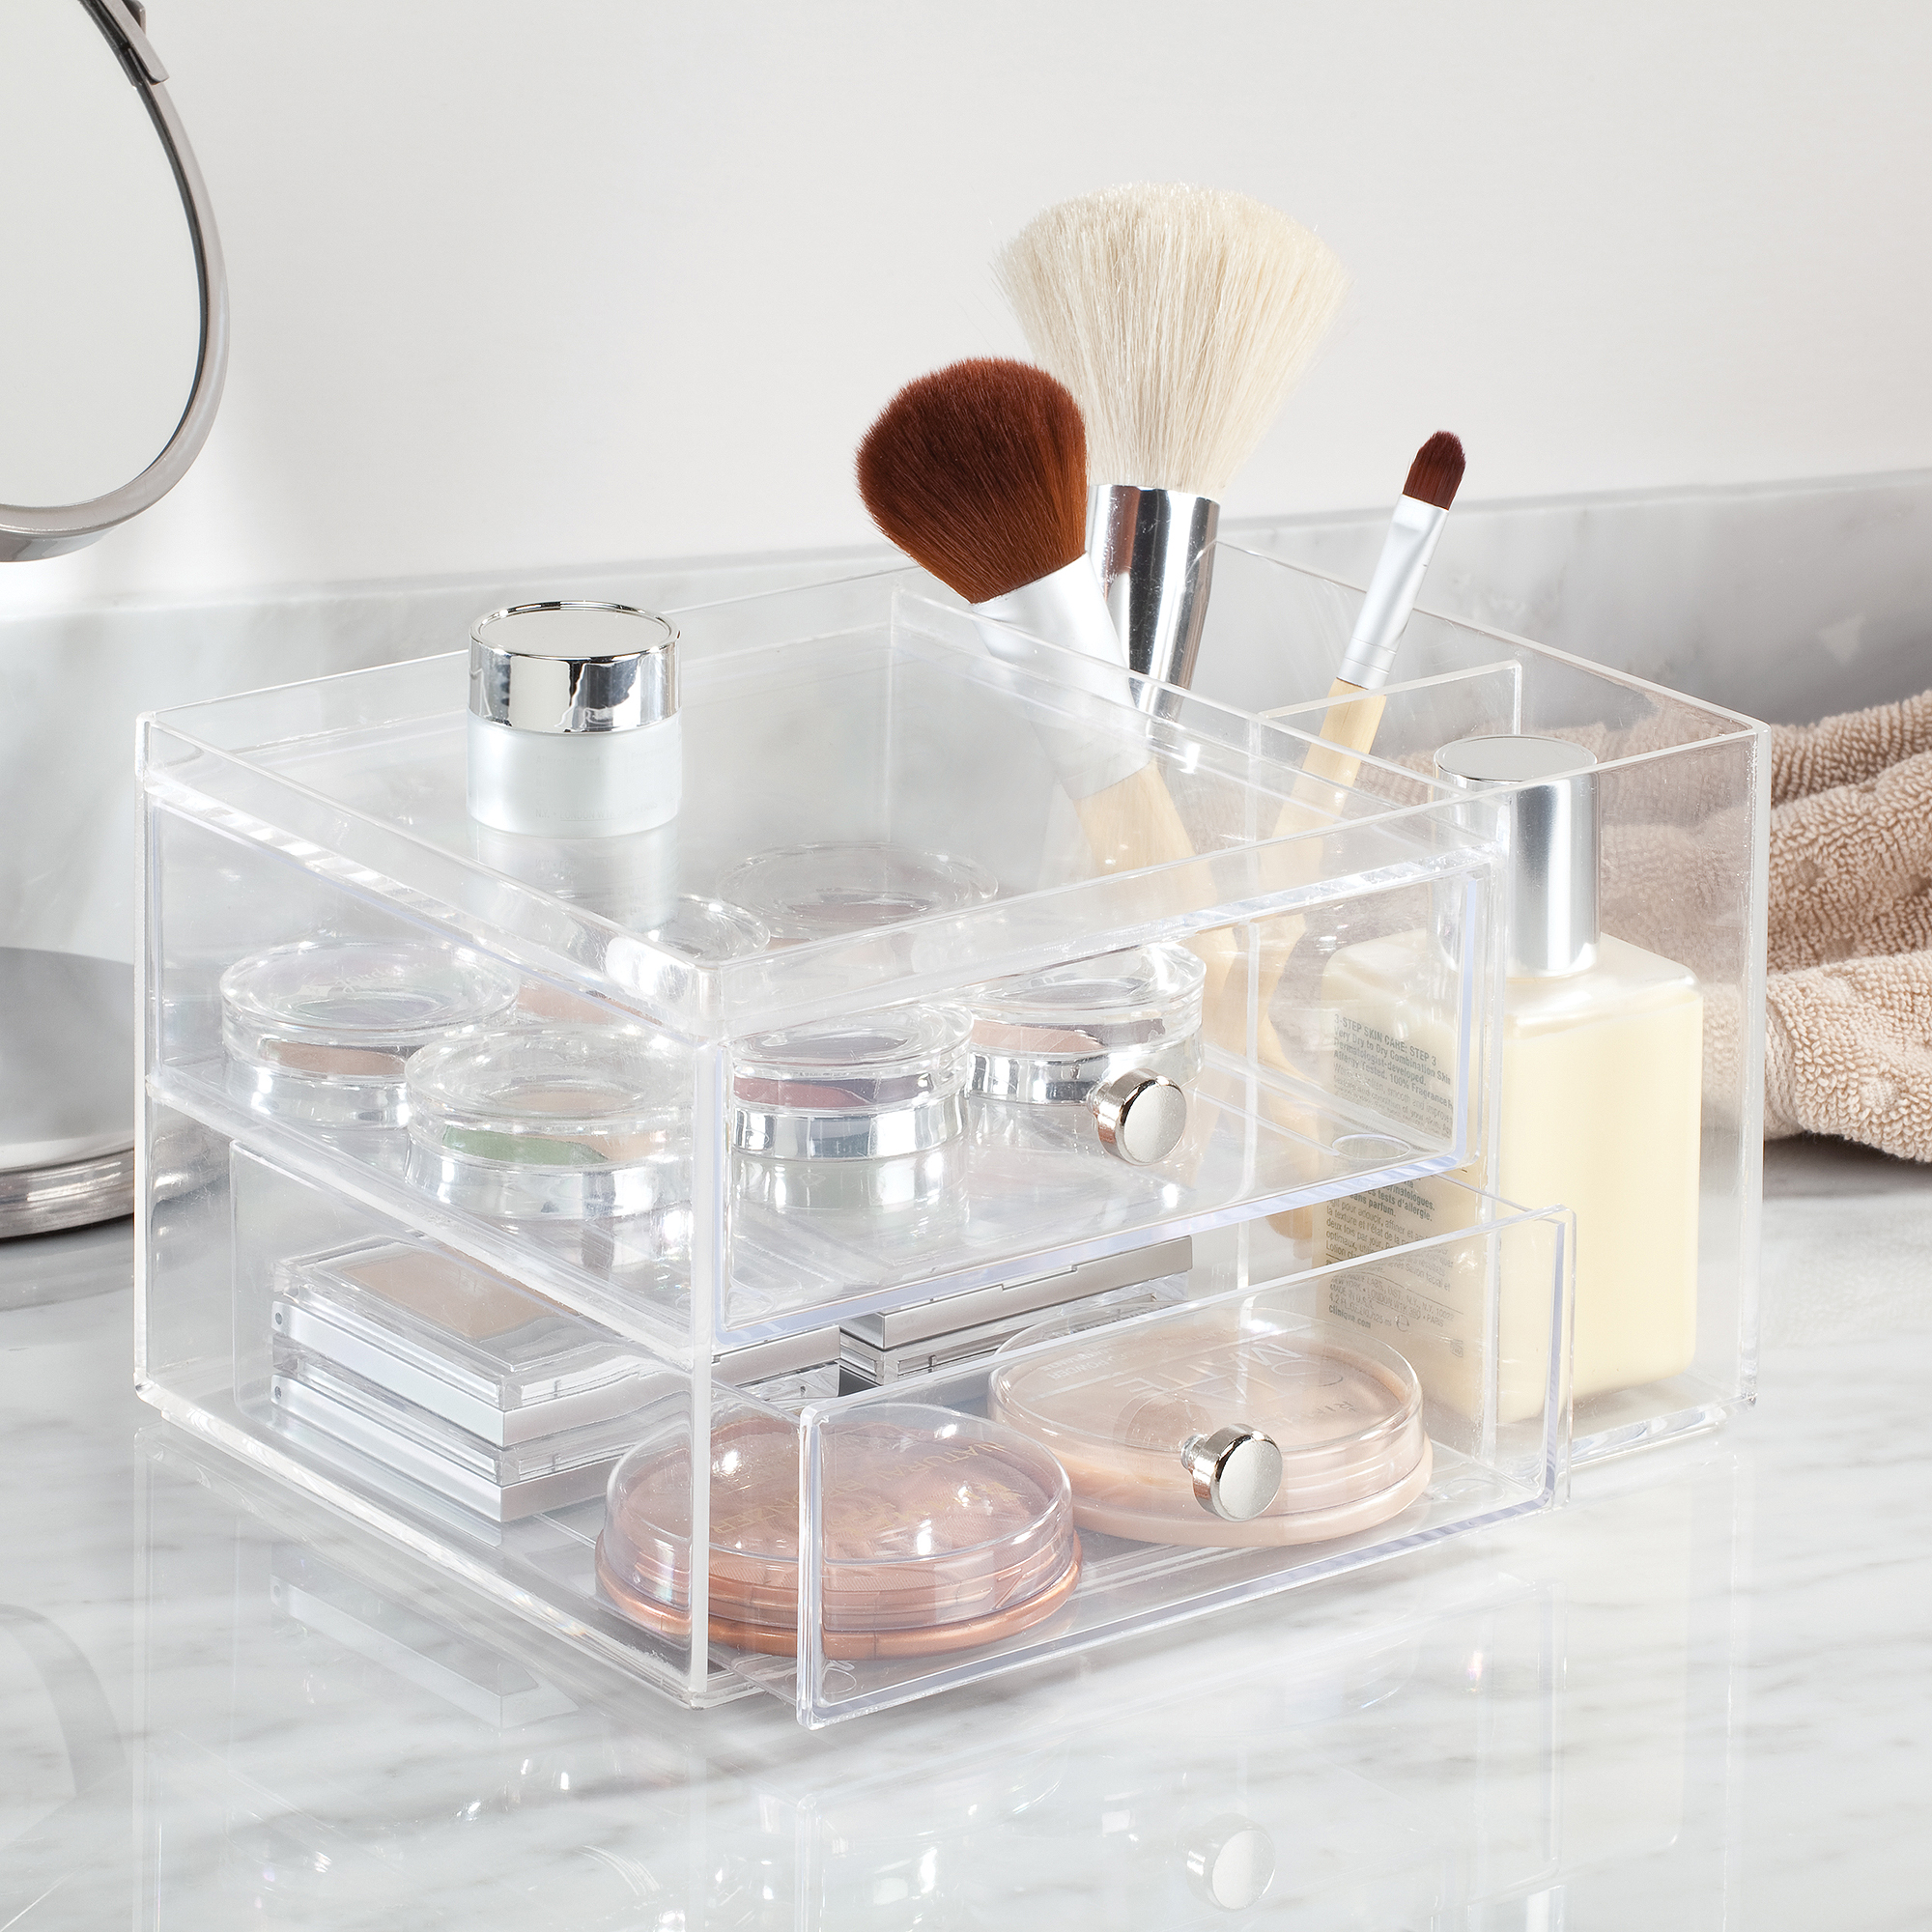 InterDesign Clarity Cosmetic Organizer for Vanity Cabinet to Hold Makeup, Beauty Products, 2 Drawer with Side Caddy, Clear